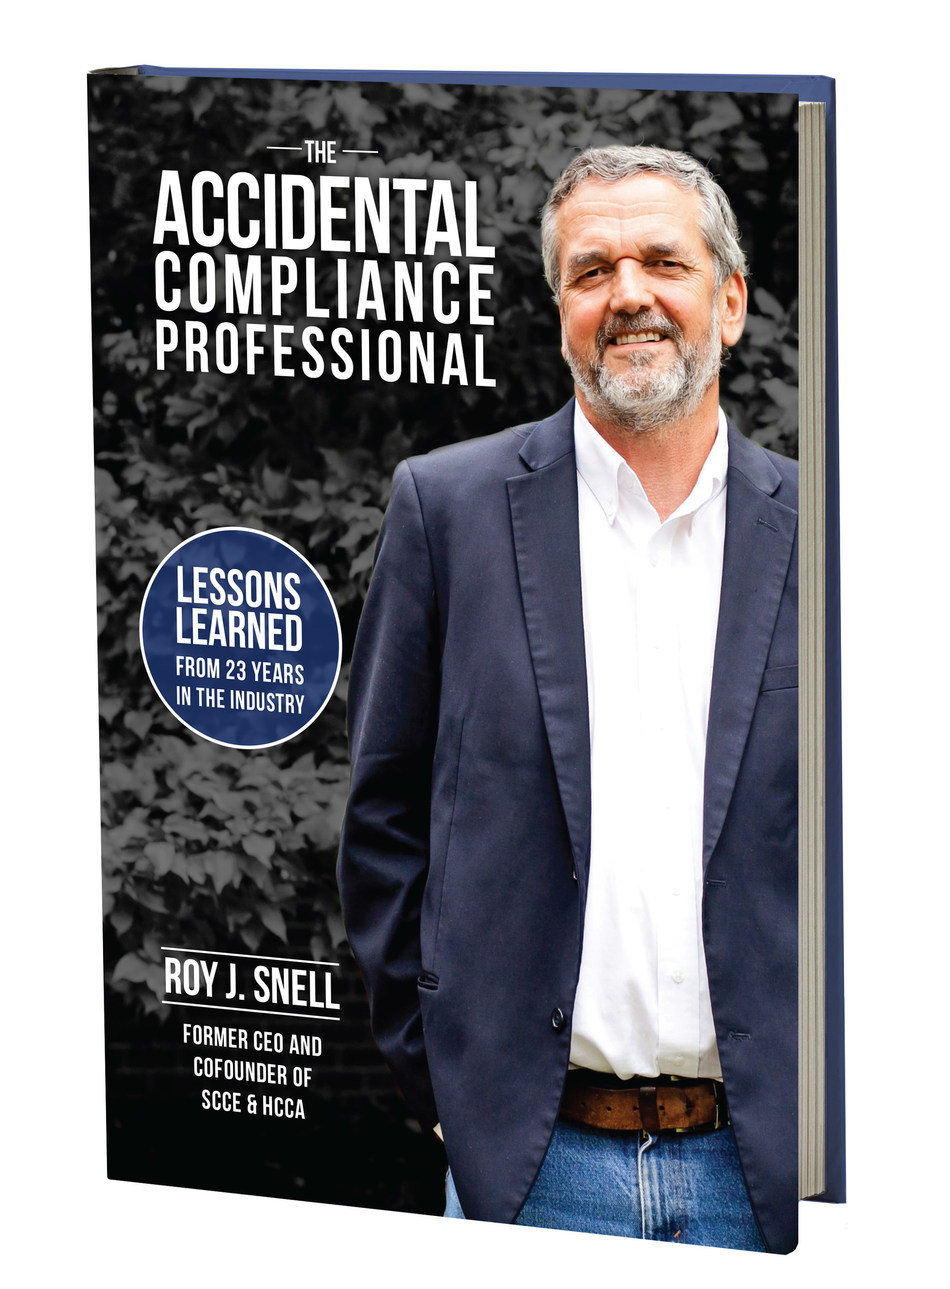 The Accidental Compliance Professional, by Roy J. Snell